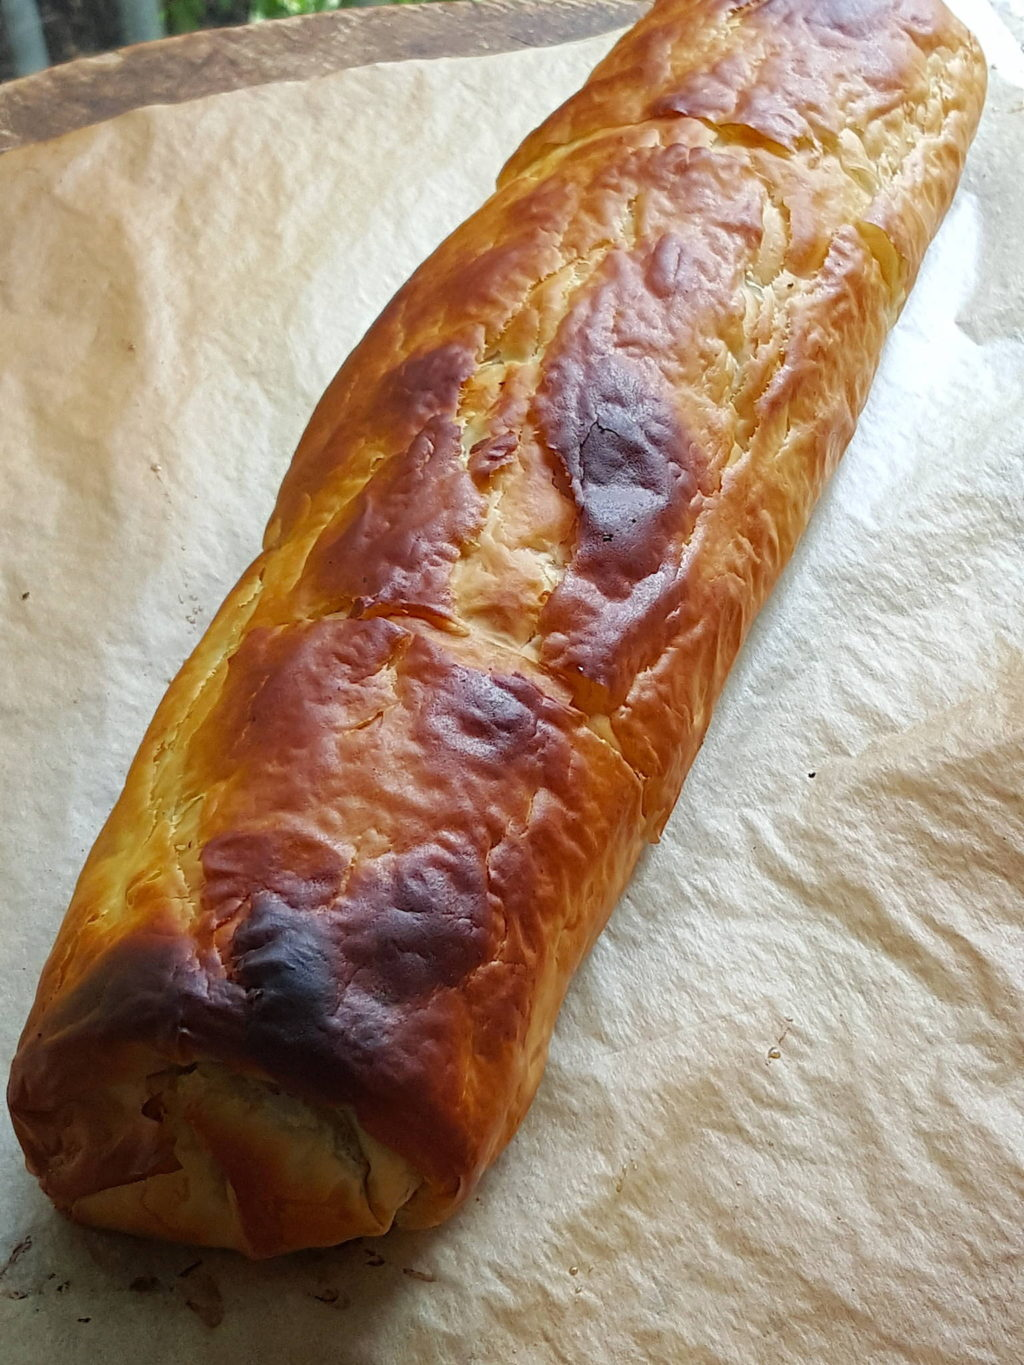 Cook filo to a deep golden brown